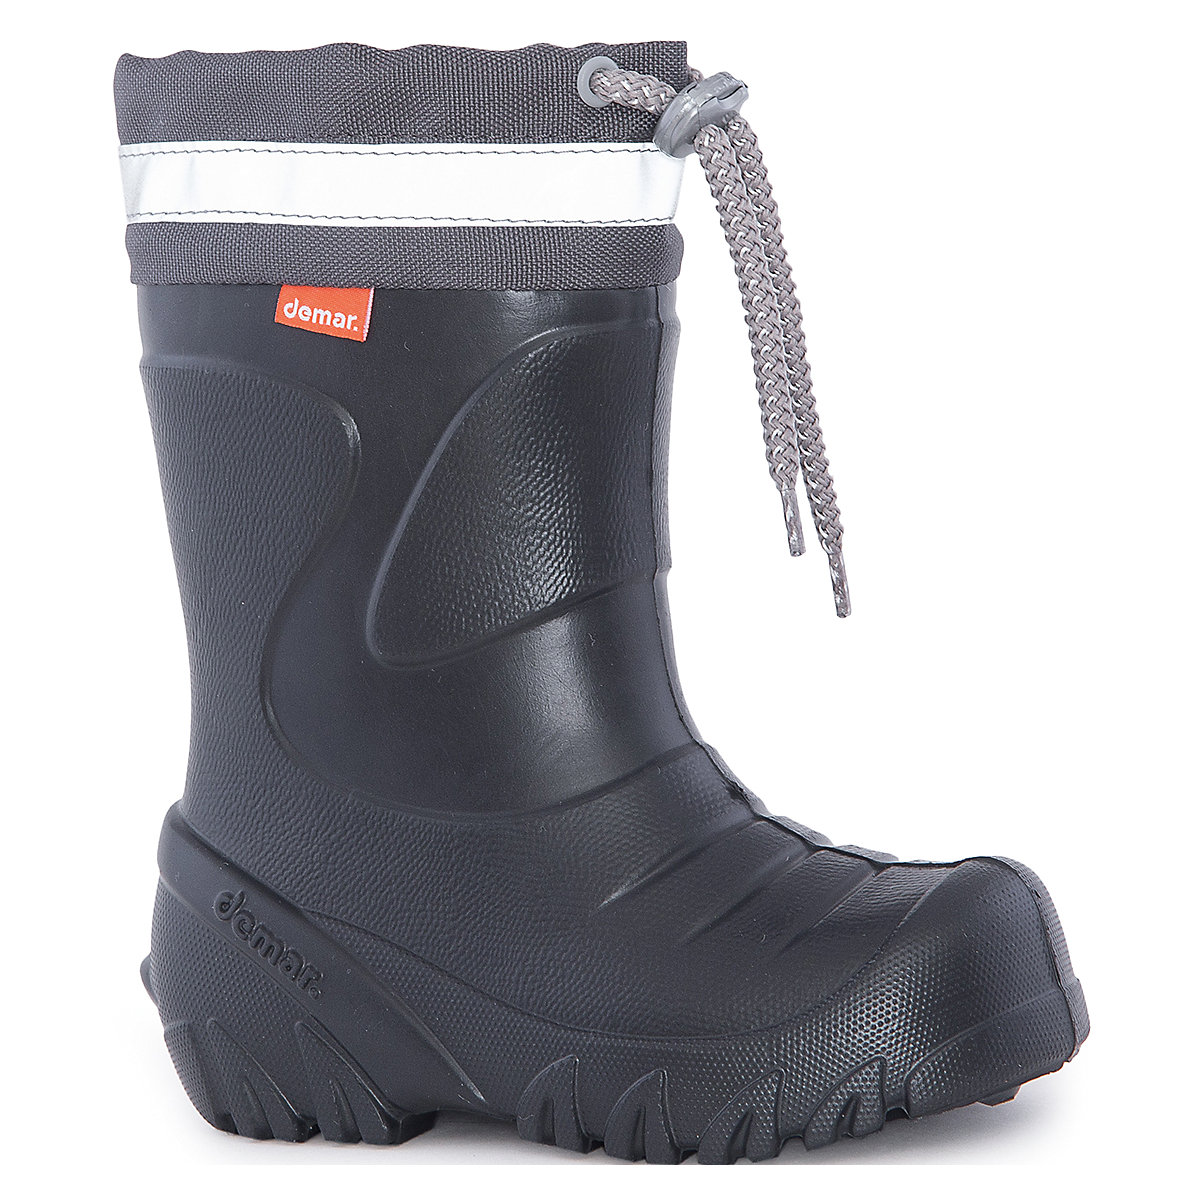 DEMAR Boots 4948841 boys All Seasons Rubber baby shoes boy demar boots 4948841 boys all seasons rubber baby shoes boy